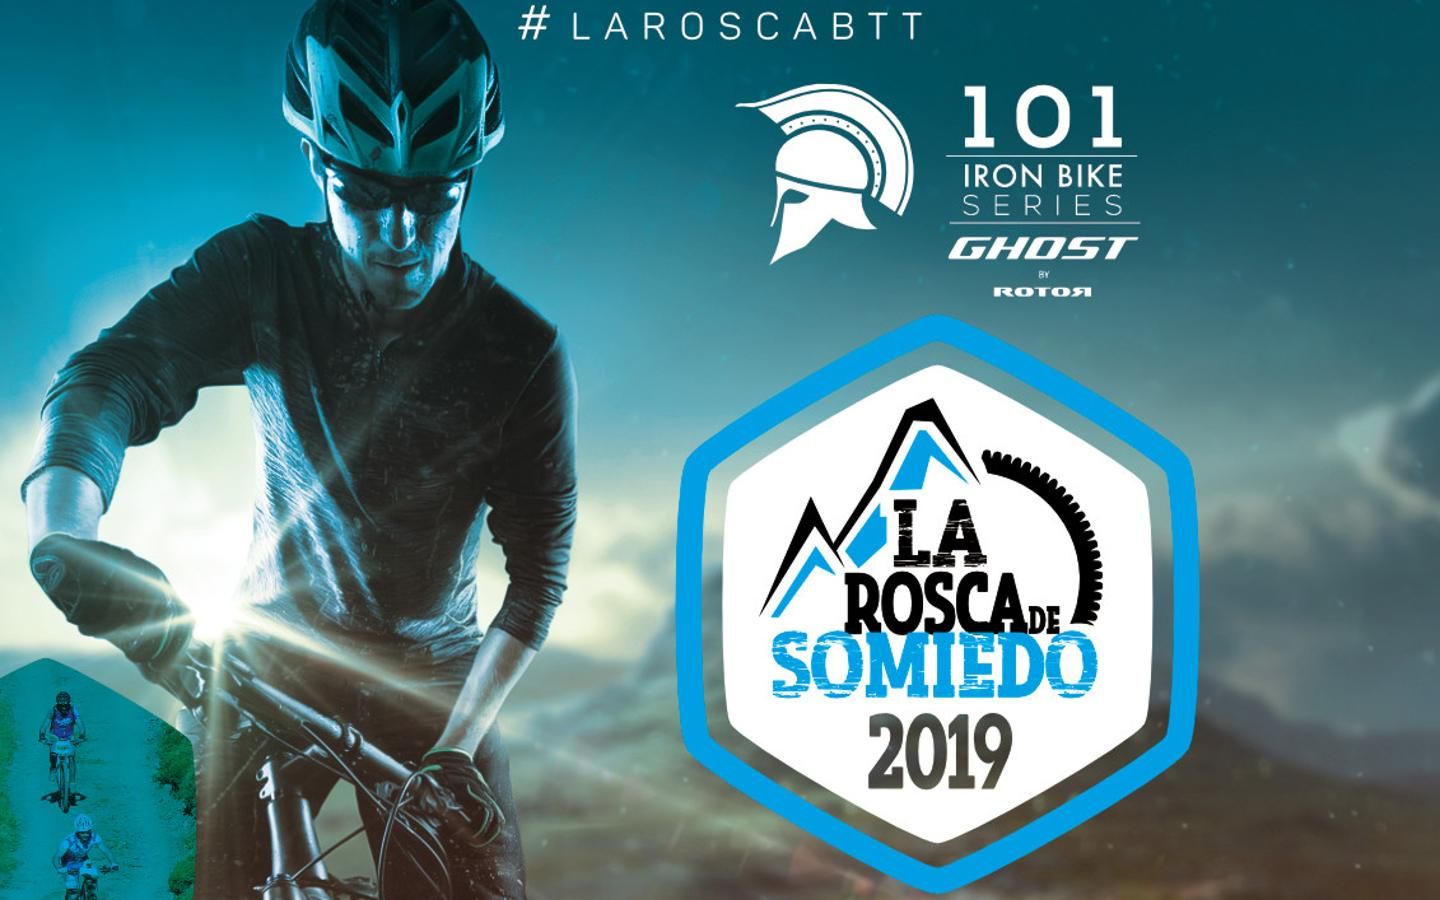 #LAROSCABTT 2019 circuito 101 Iron Bike Series